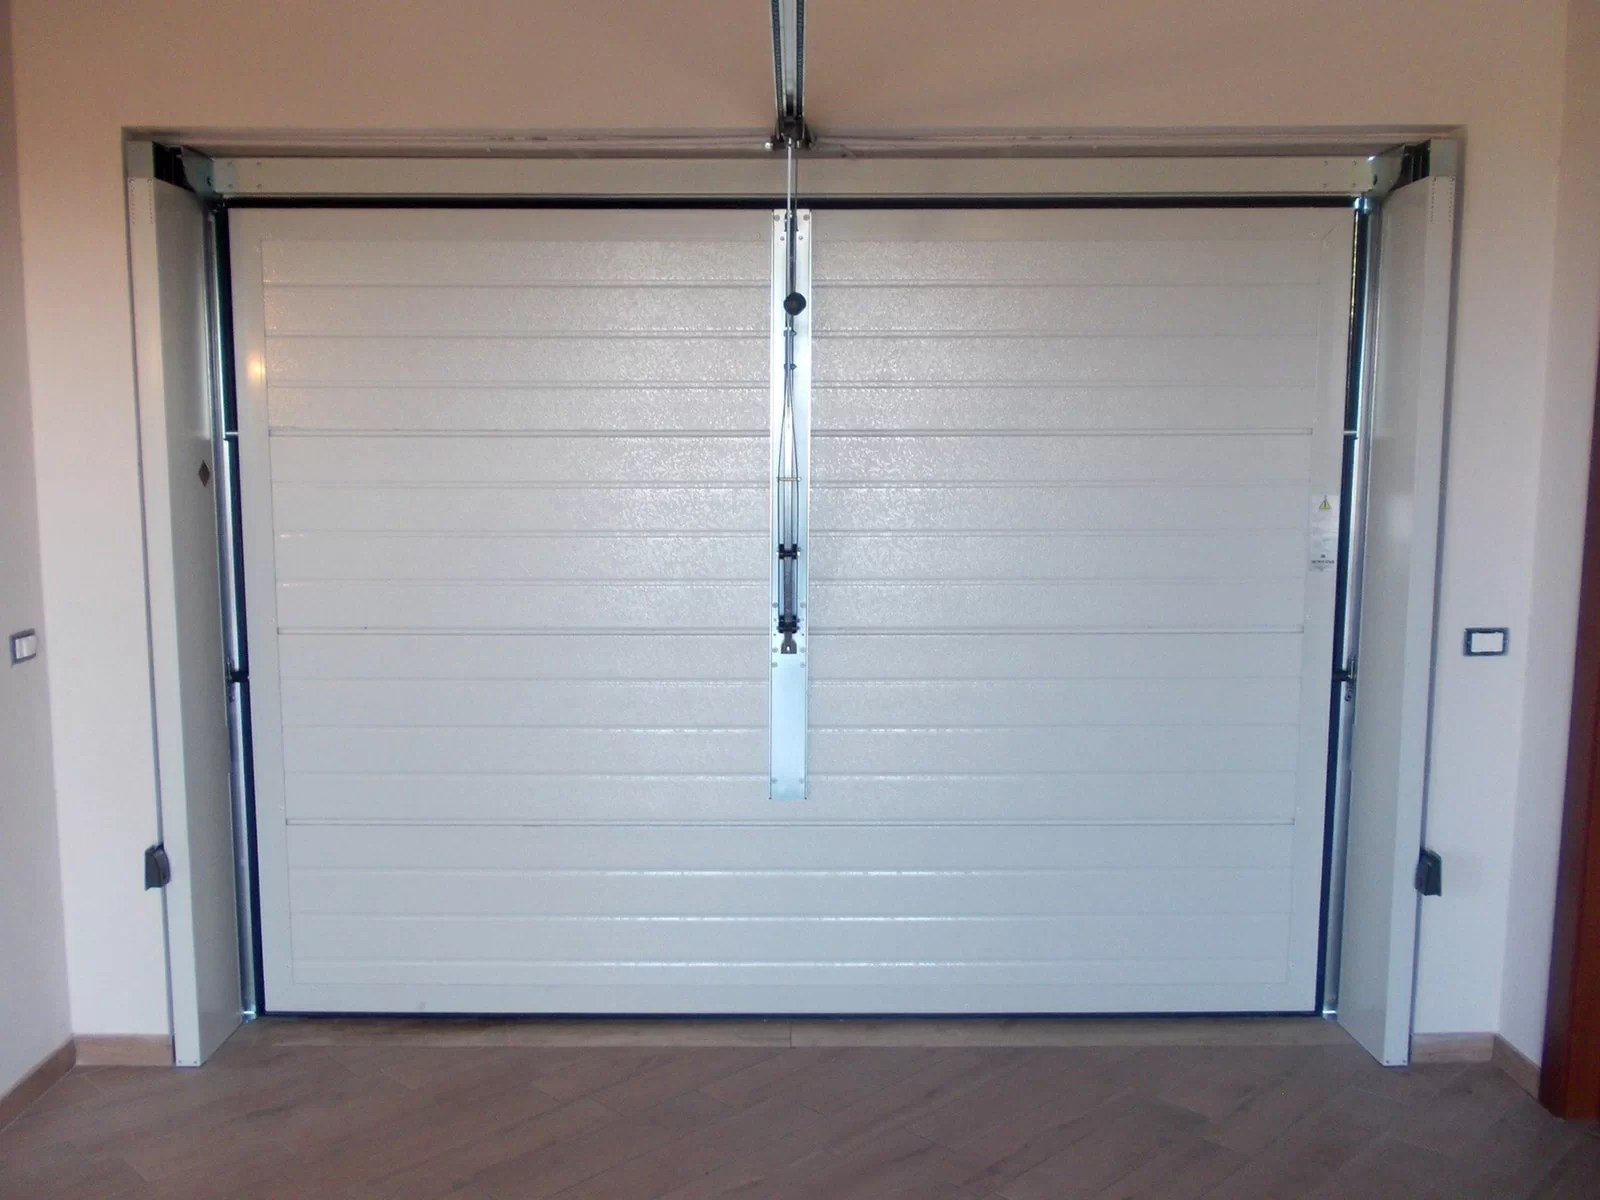 Portone basculante da garage SWING - Vista interna